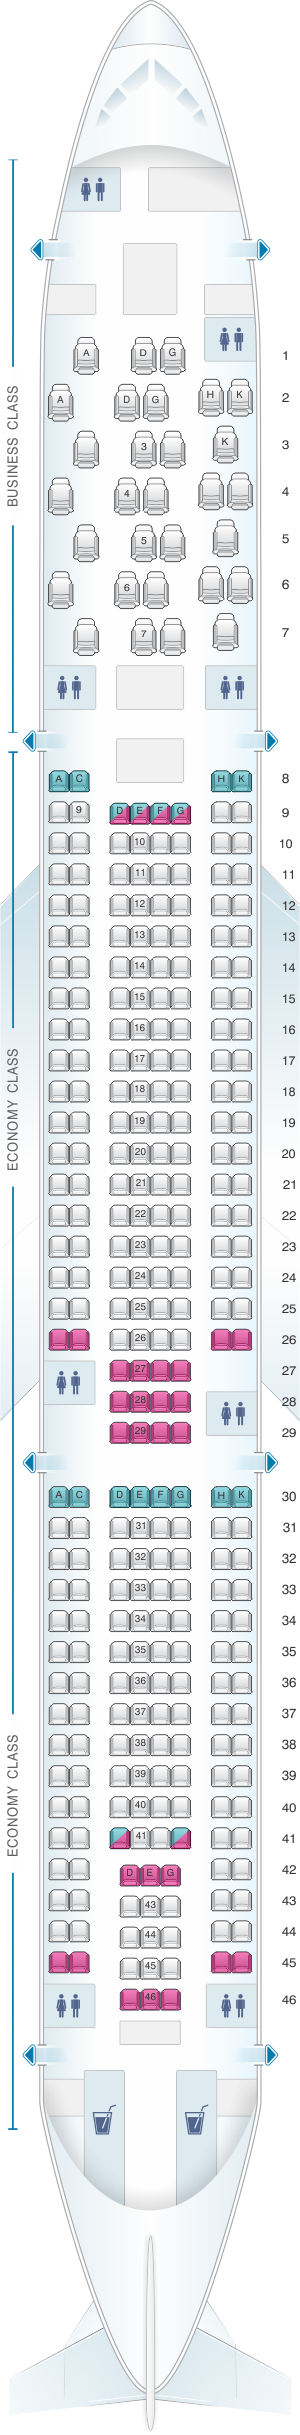 Seat map for Aer Lingus Airbus A330 300